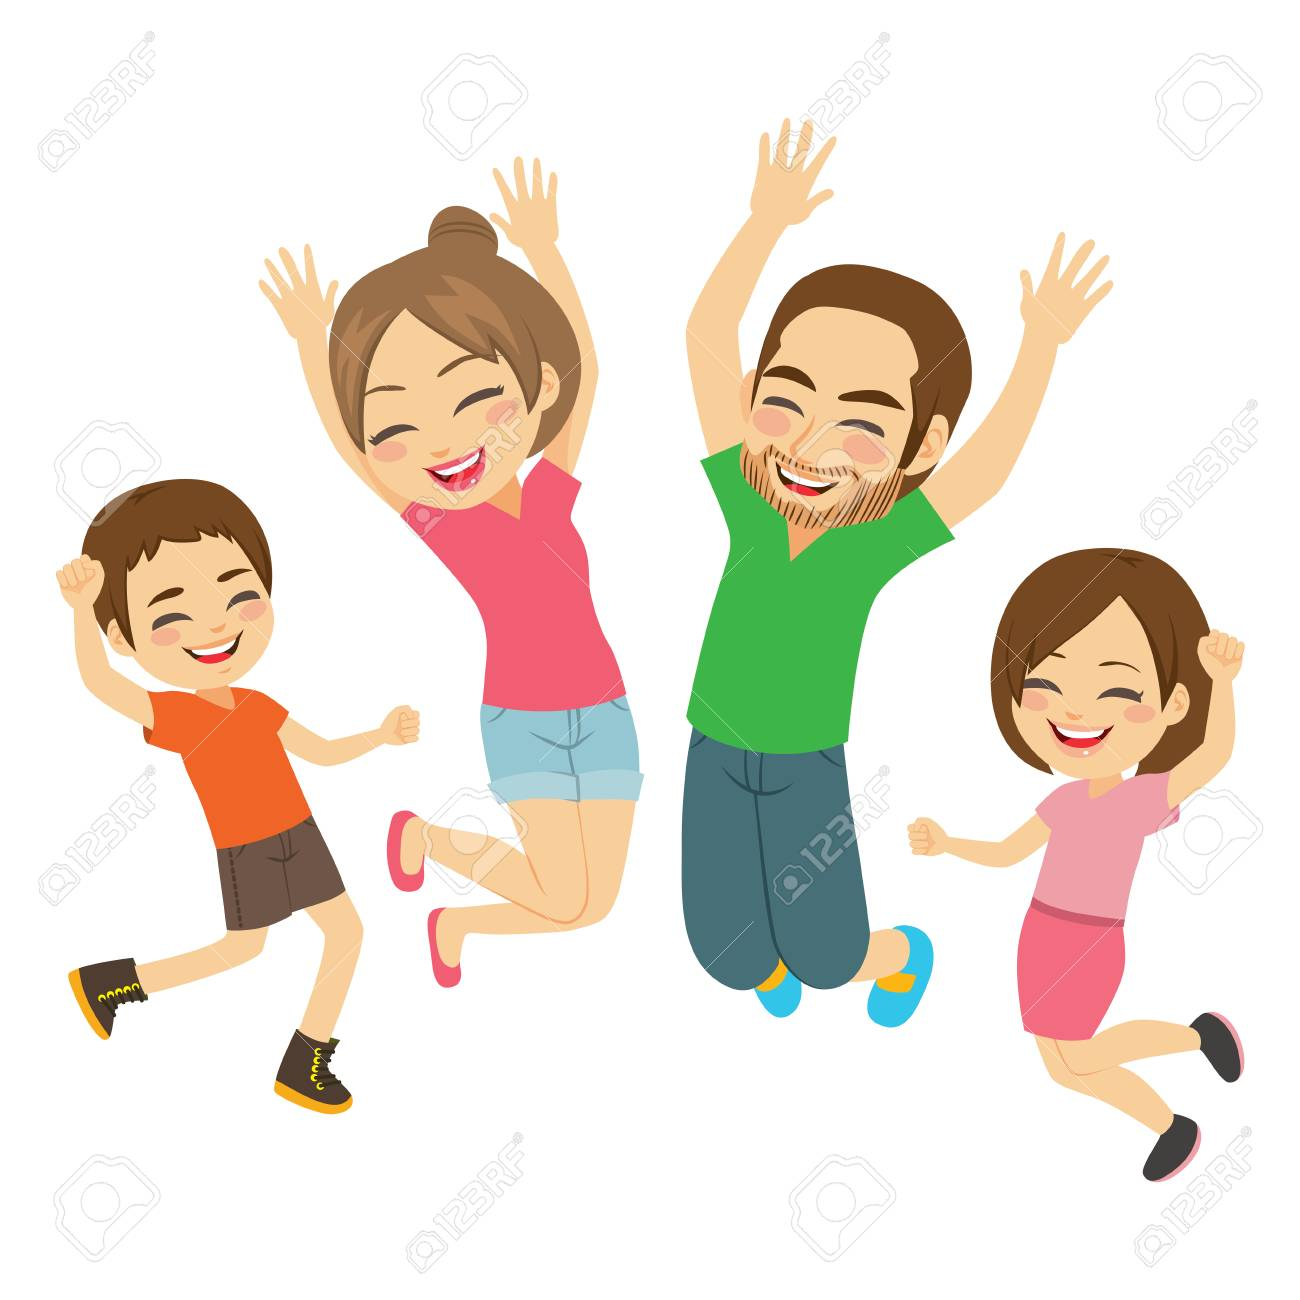 Young active happy smiling family jumping together isolated - 120373286